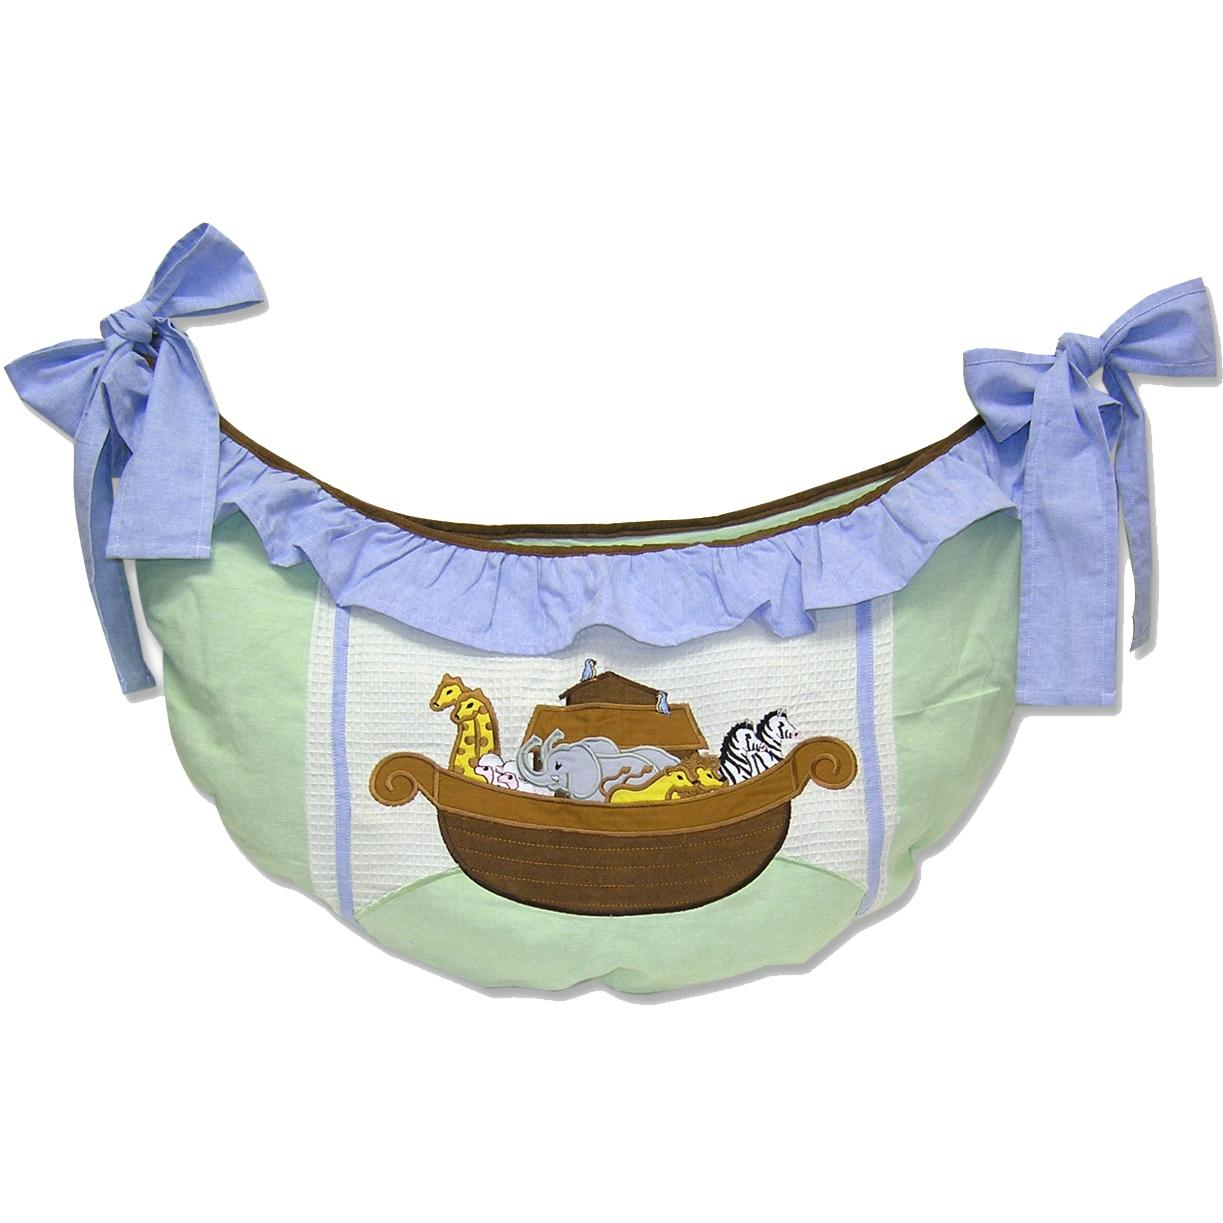 Trend Lab Crib Toy Bag - Noahs Ark